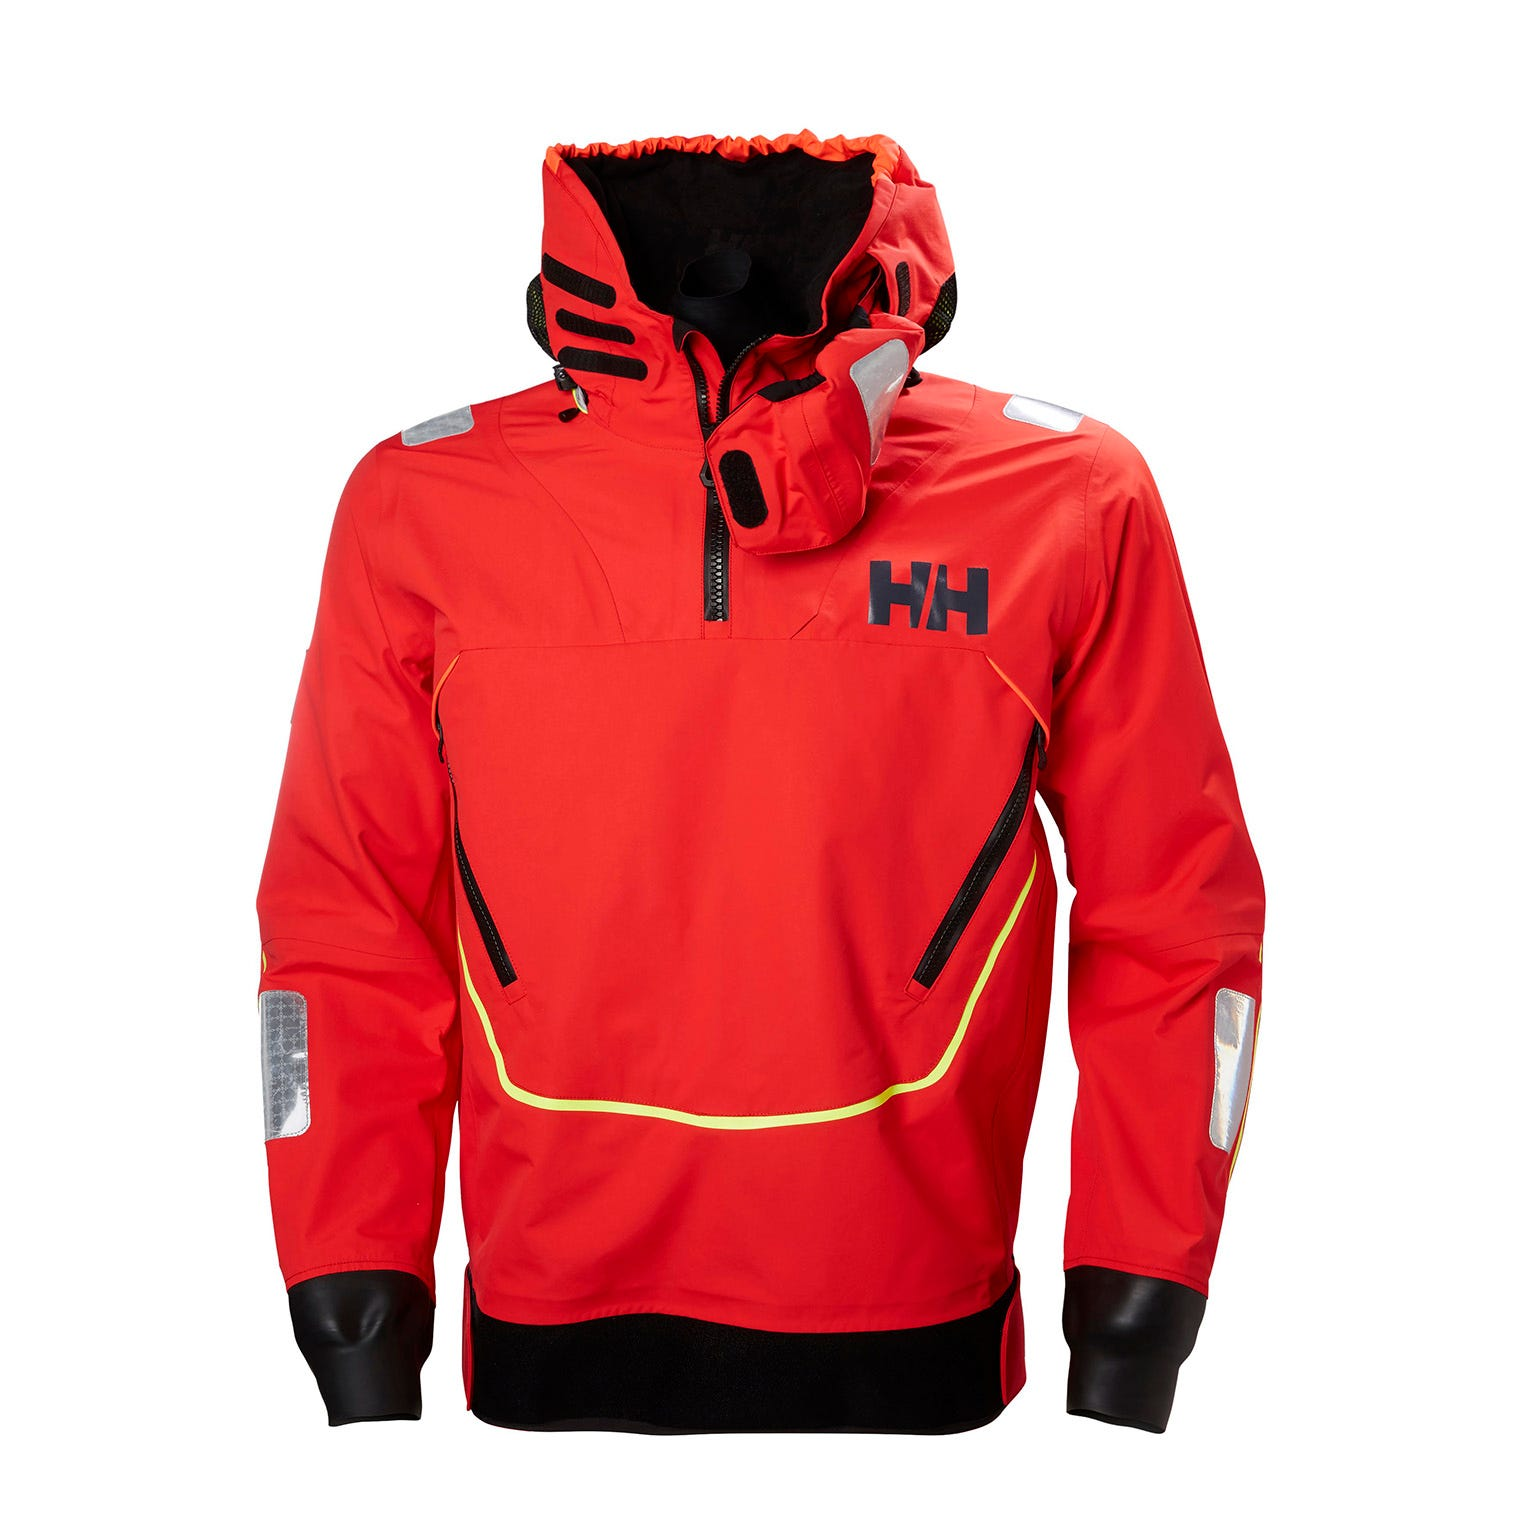 Mens Ægir Race Offshore Smock Top | Helly Hansen Sailing Jacket Red XXL